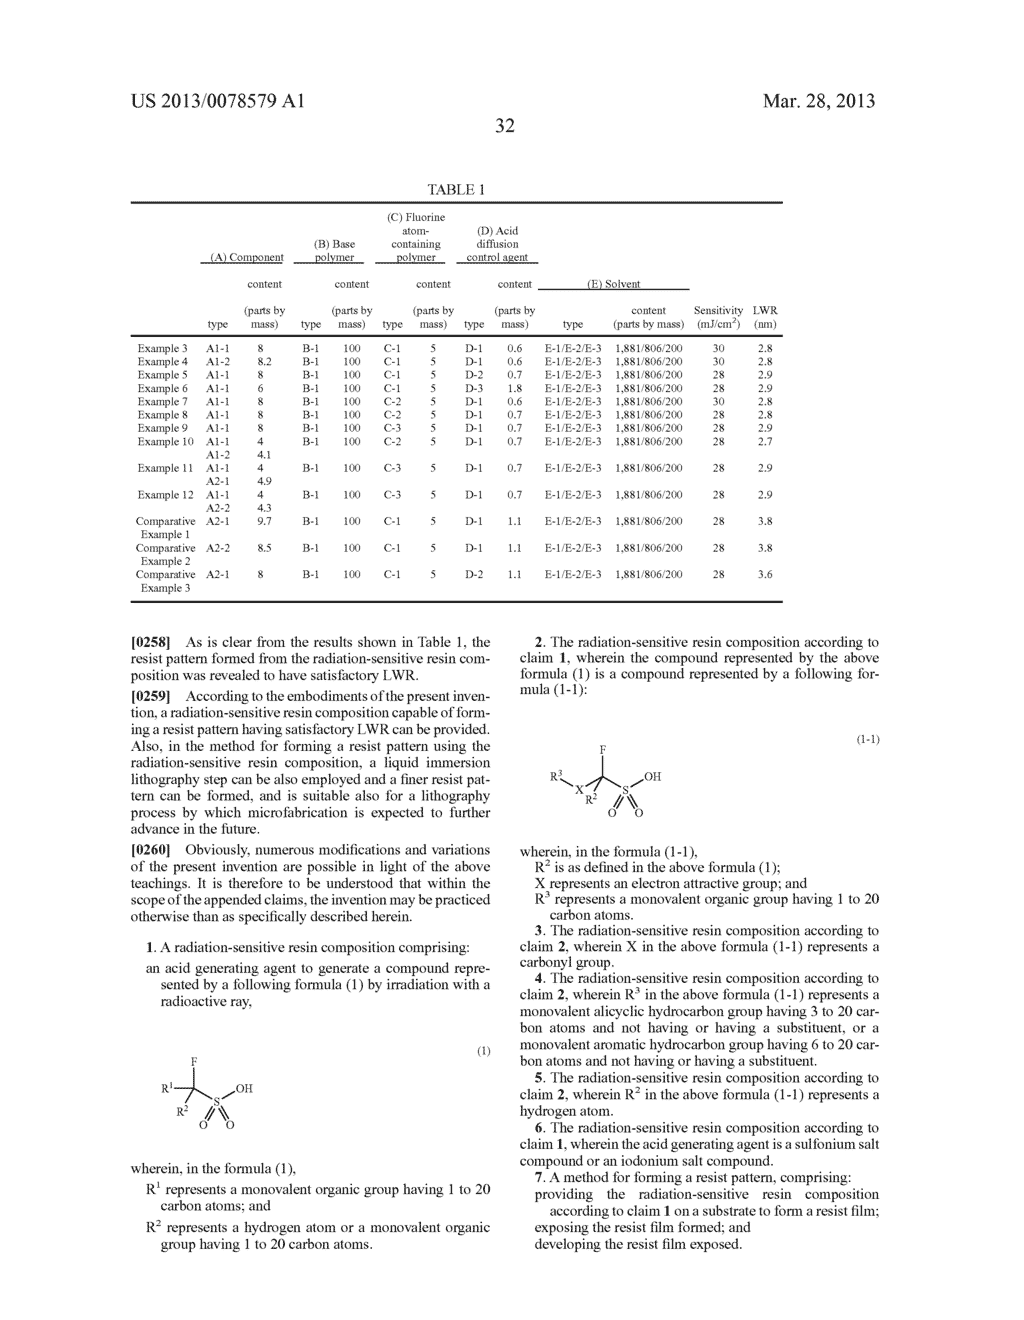 RADIATION-SENSITIVE RESIN COMPOSITION, METHOD FOR FORMING RESIST PATTERN,     ACID GENERATING AGENT AND COMPOUND - diagram, schematic, and image 33